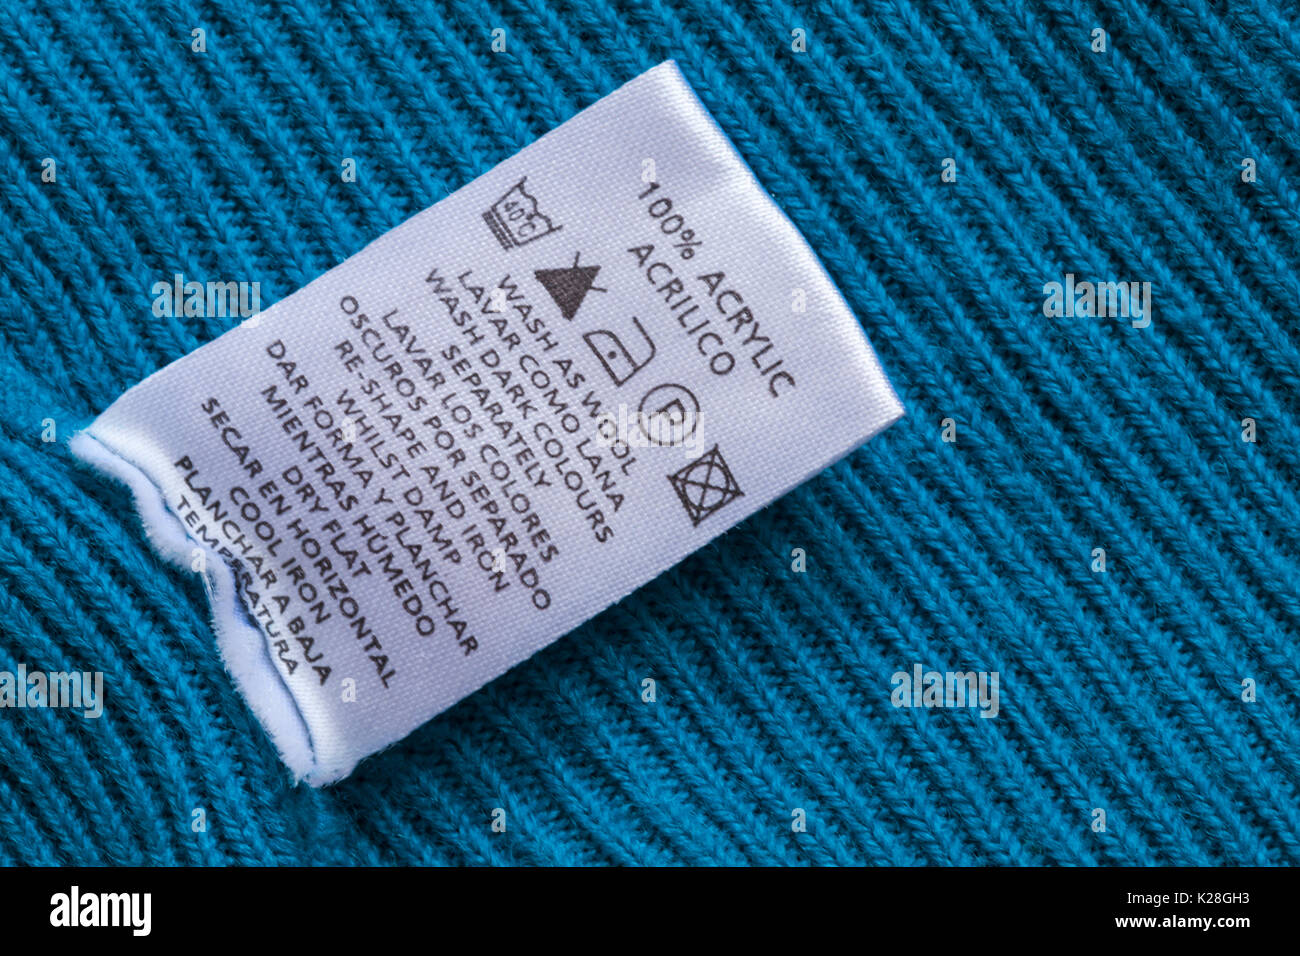 washing instructions stockfotos washing instructions bilder alamy. Black Bedroom Furniture Sets. Home Design Ideas